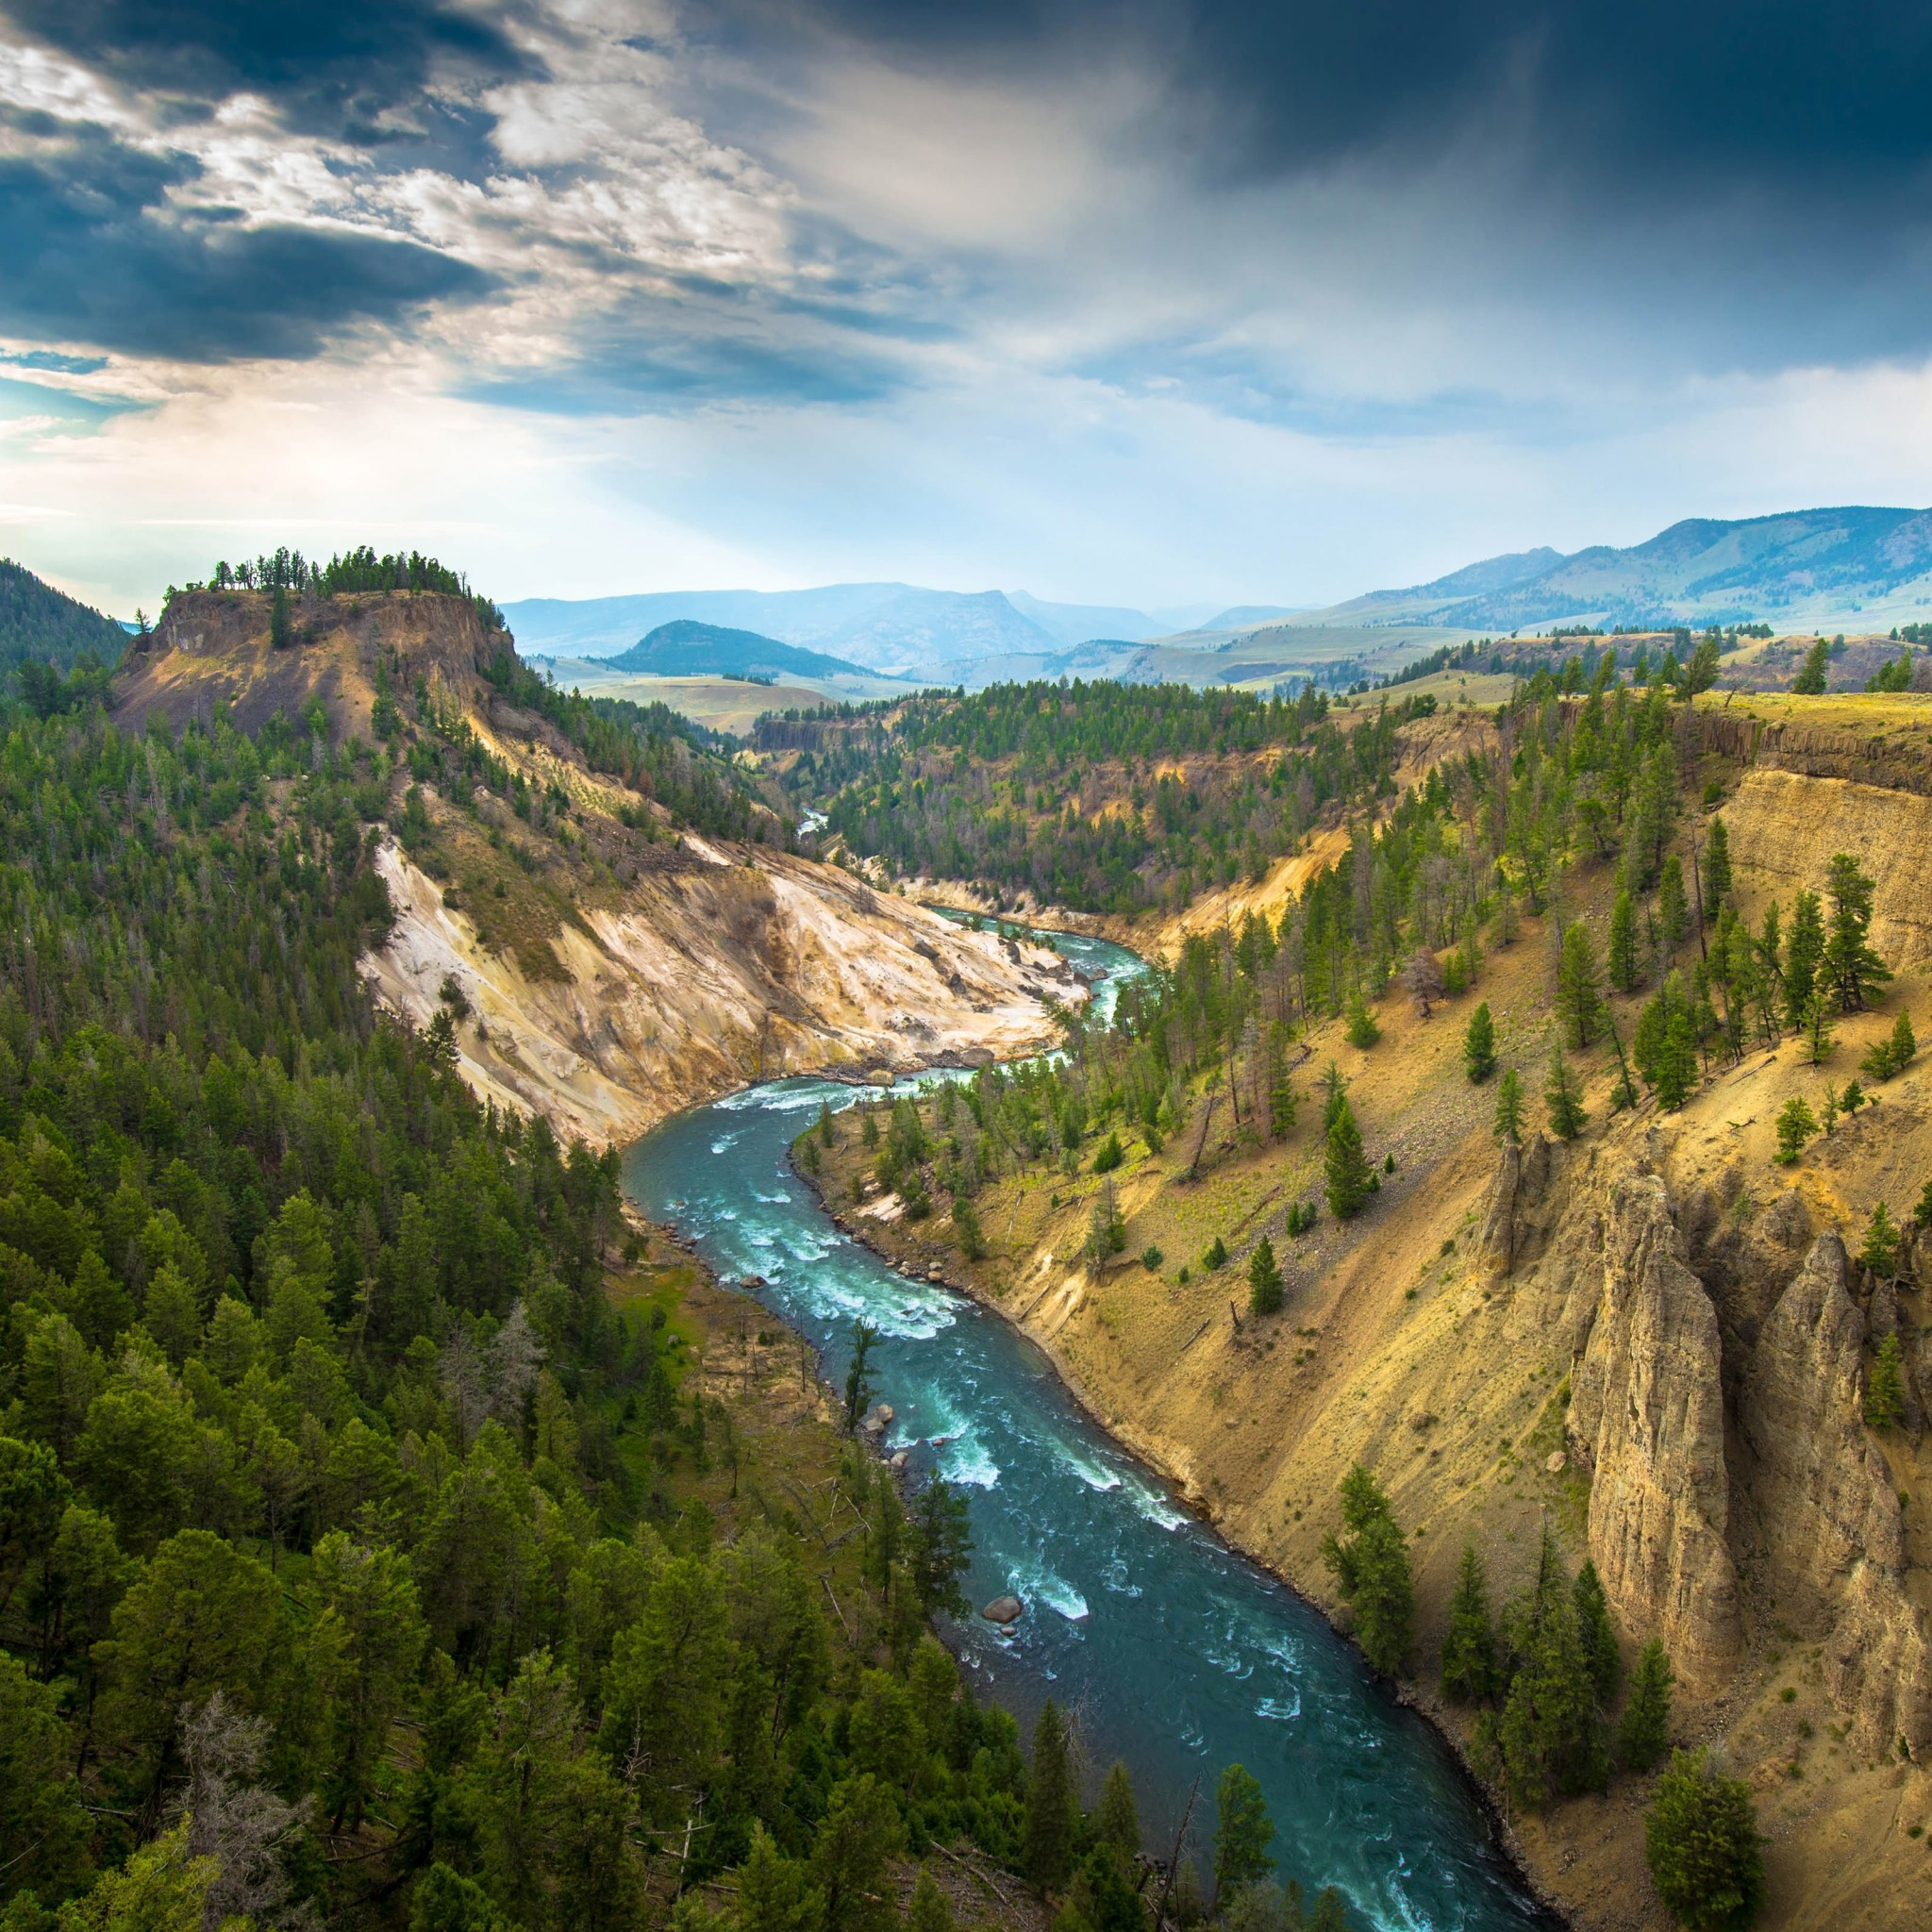 The River, Grand Canyon of Yellowstone National Park, USA Wallpaper for Google Nexus 9